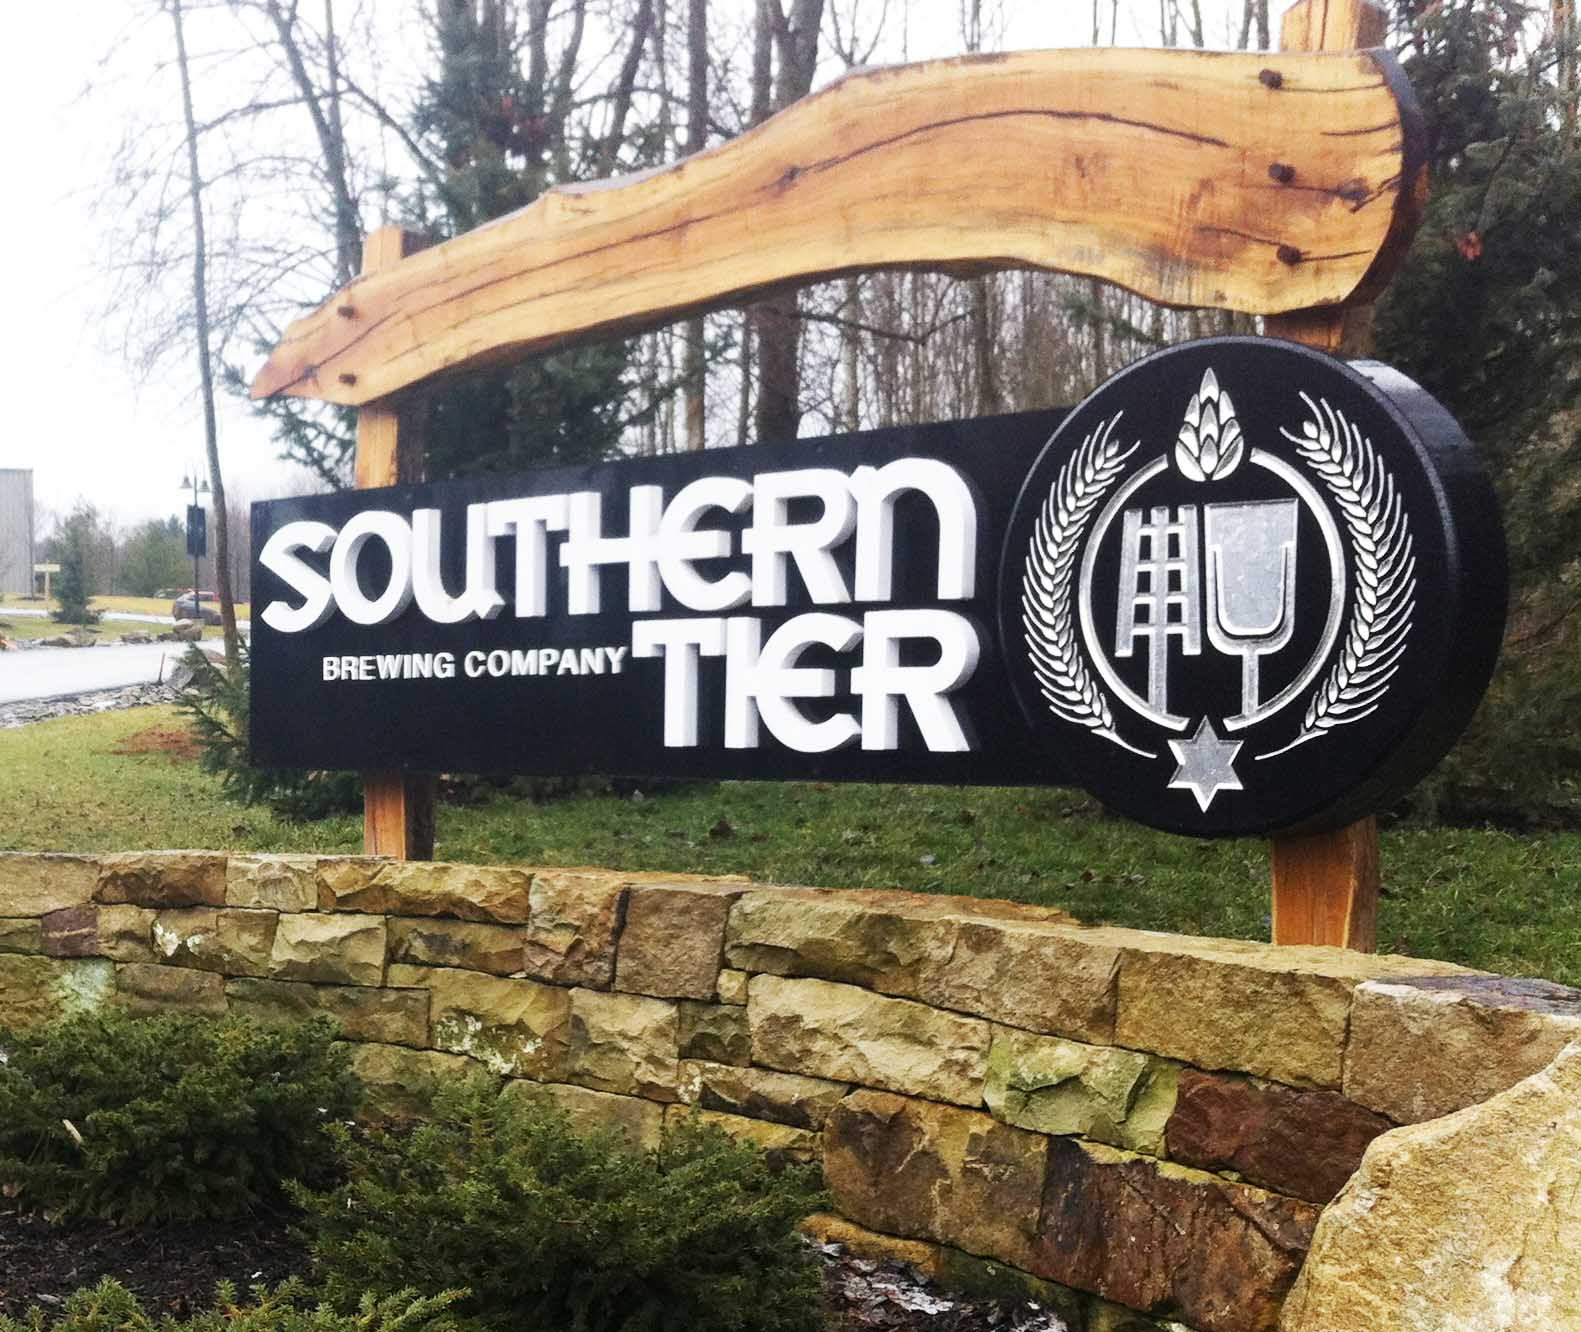 124. Southern Tier Brewery, Jamestown NY 2012